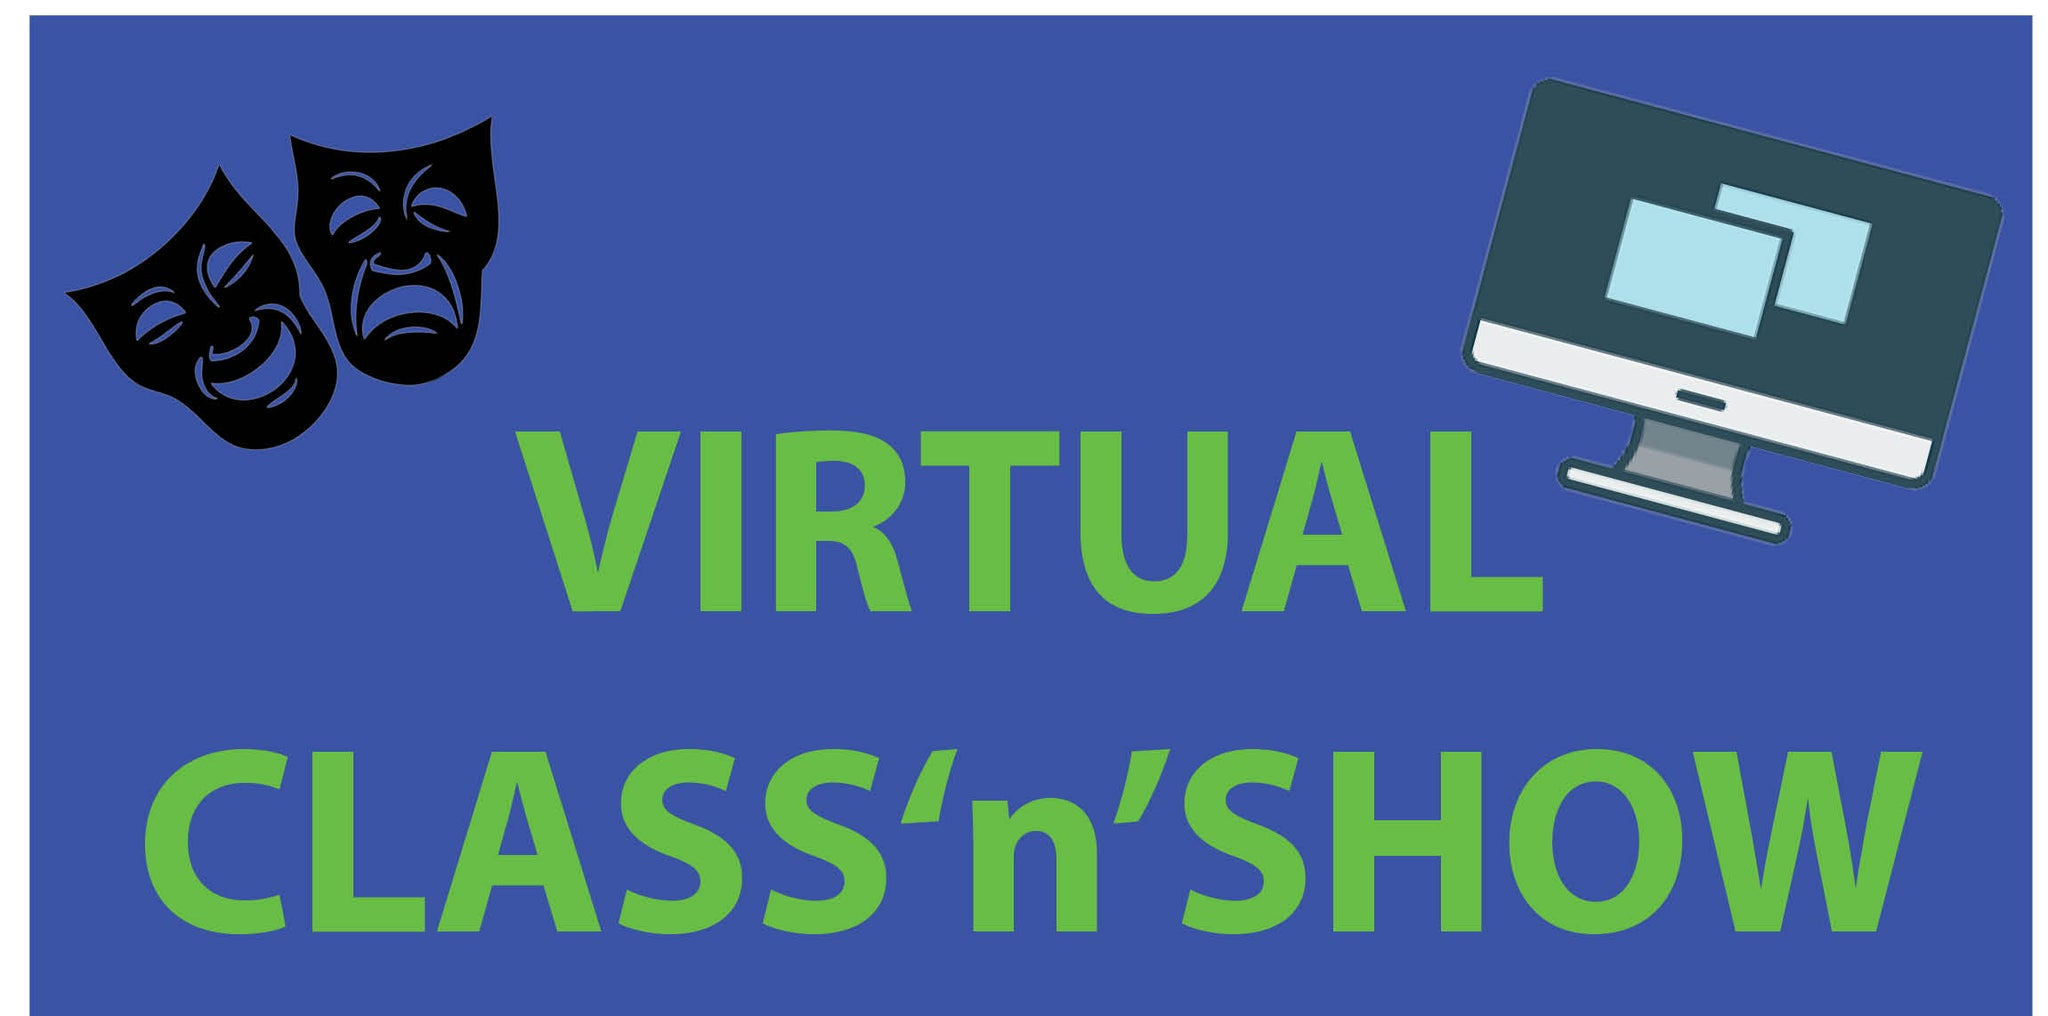 2020 Fall Virtual Class'n'Show